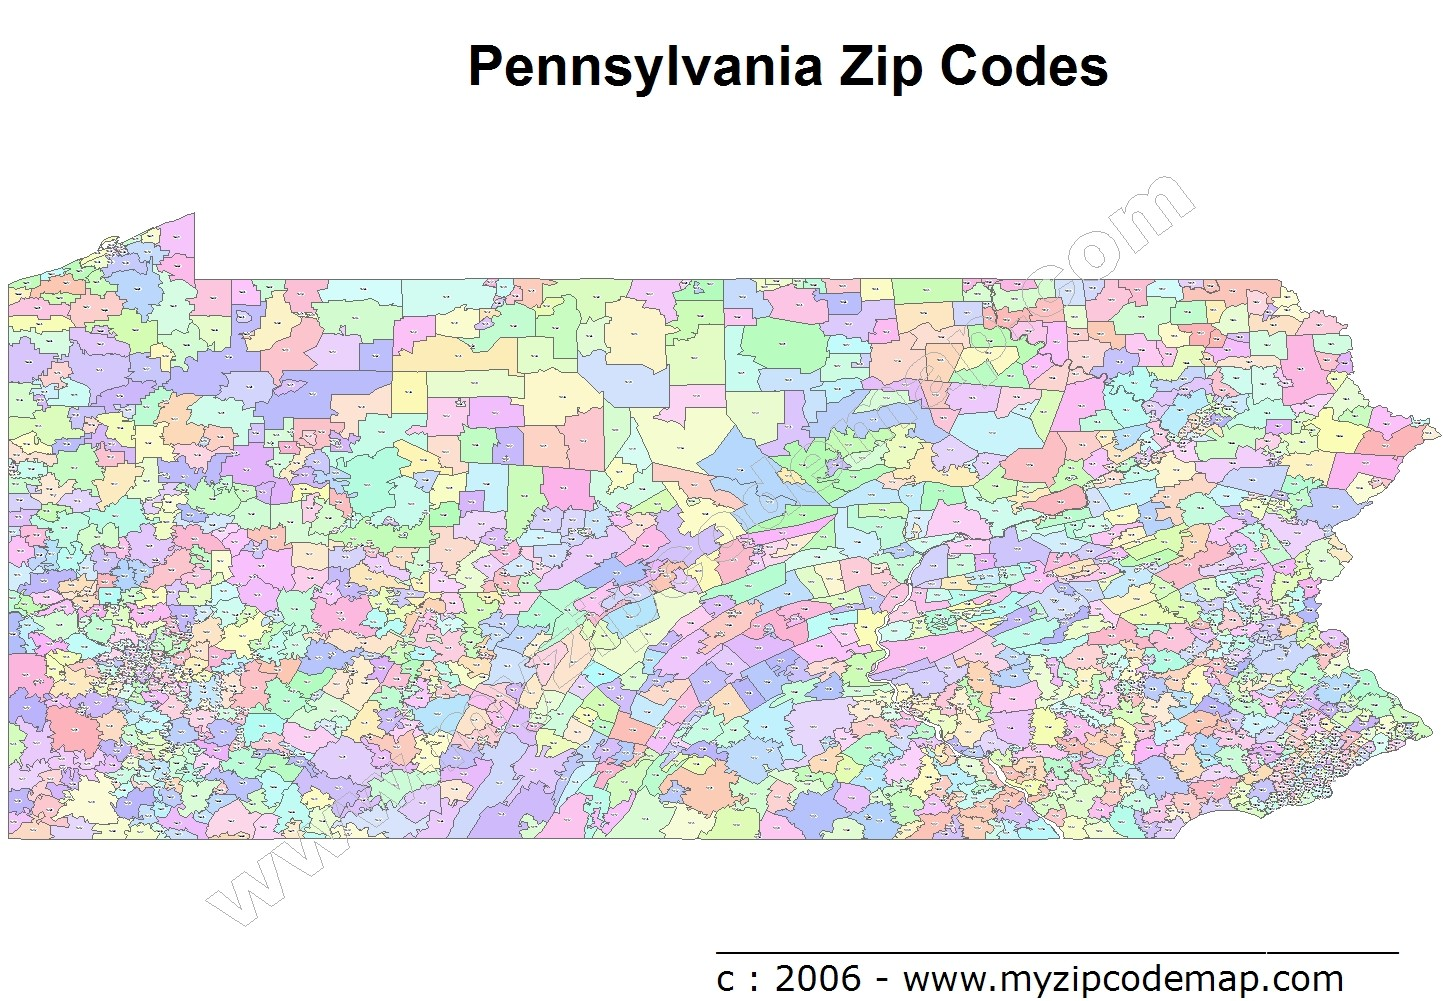 Pennsylvania (PA) Zip Code Map